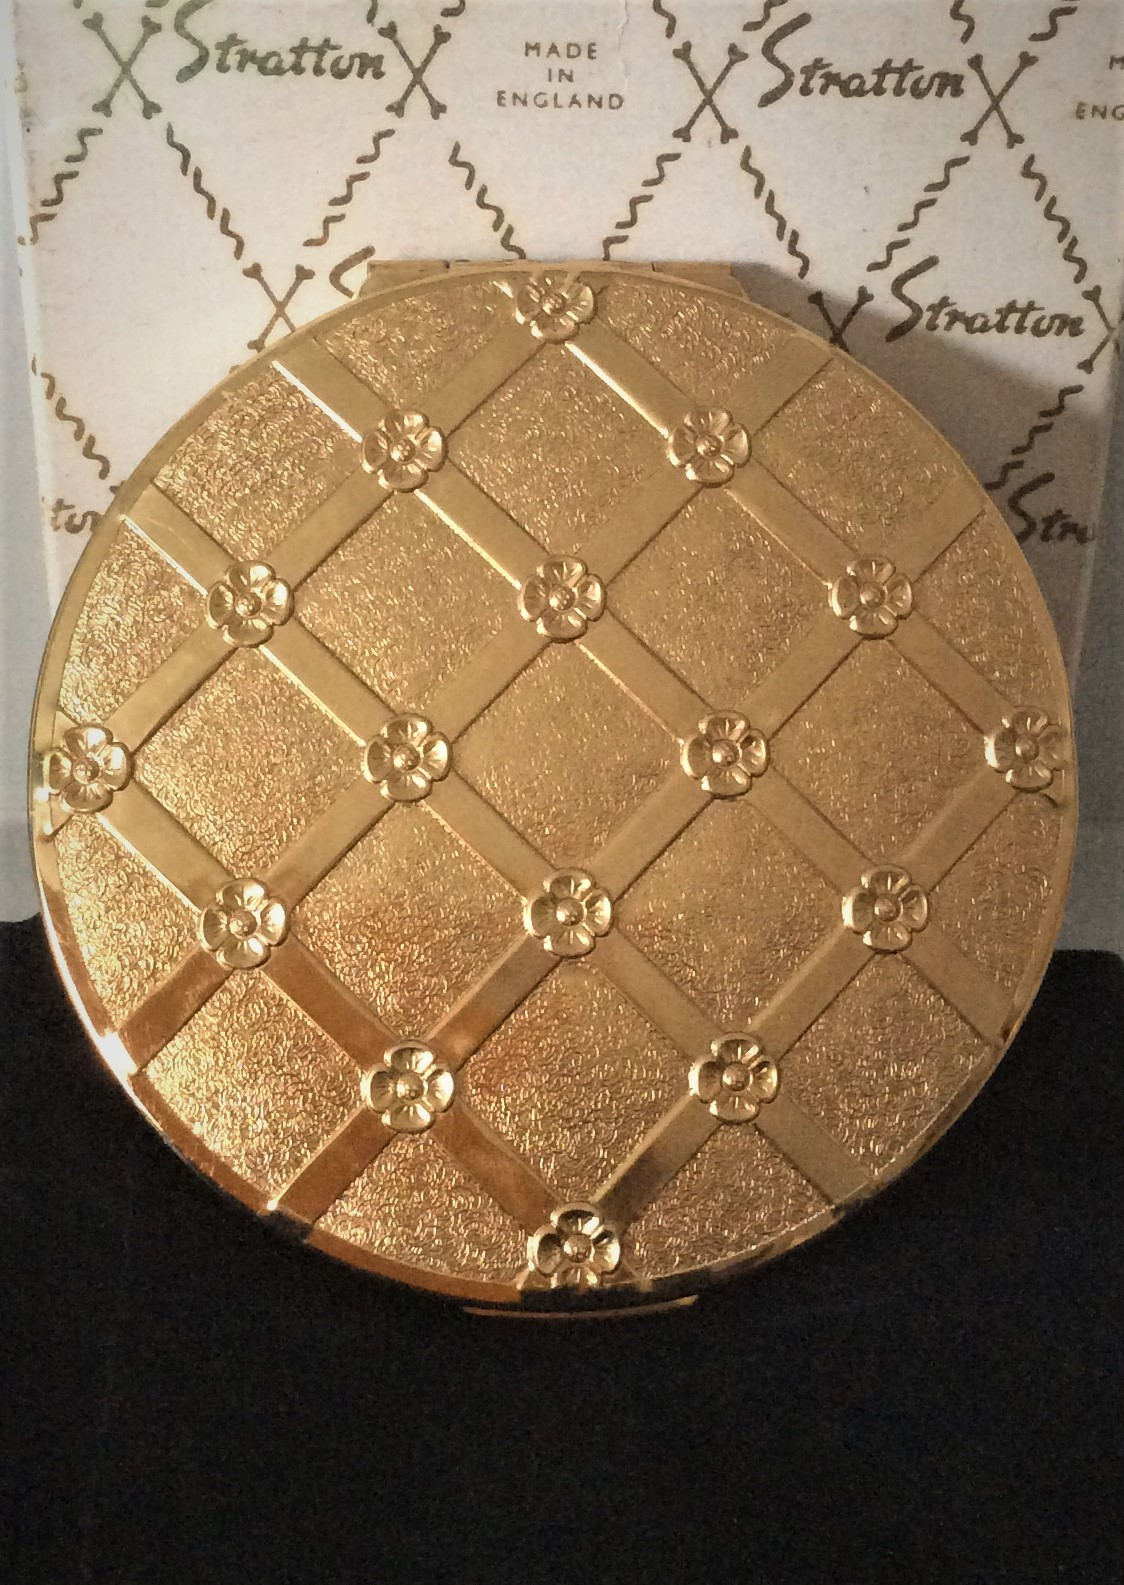 Vintage circa late 60s early 70s Unused Stratton Gold Tone Rondette Powder Compact with sifter pouch and original box Size 7cms